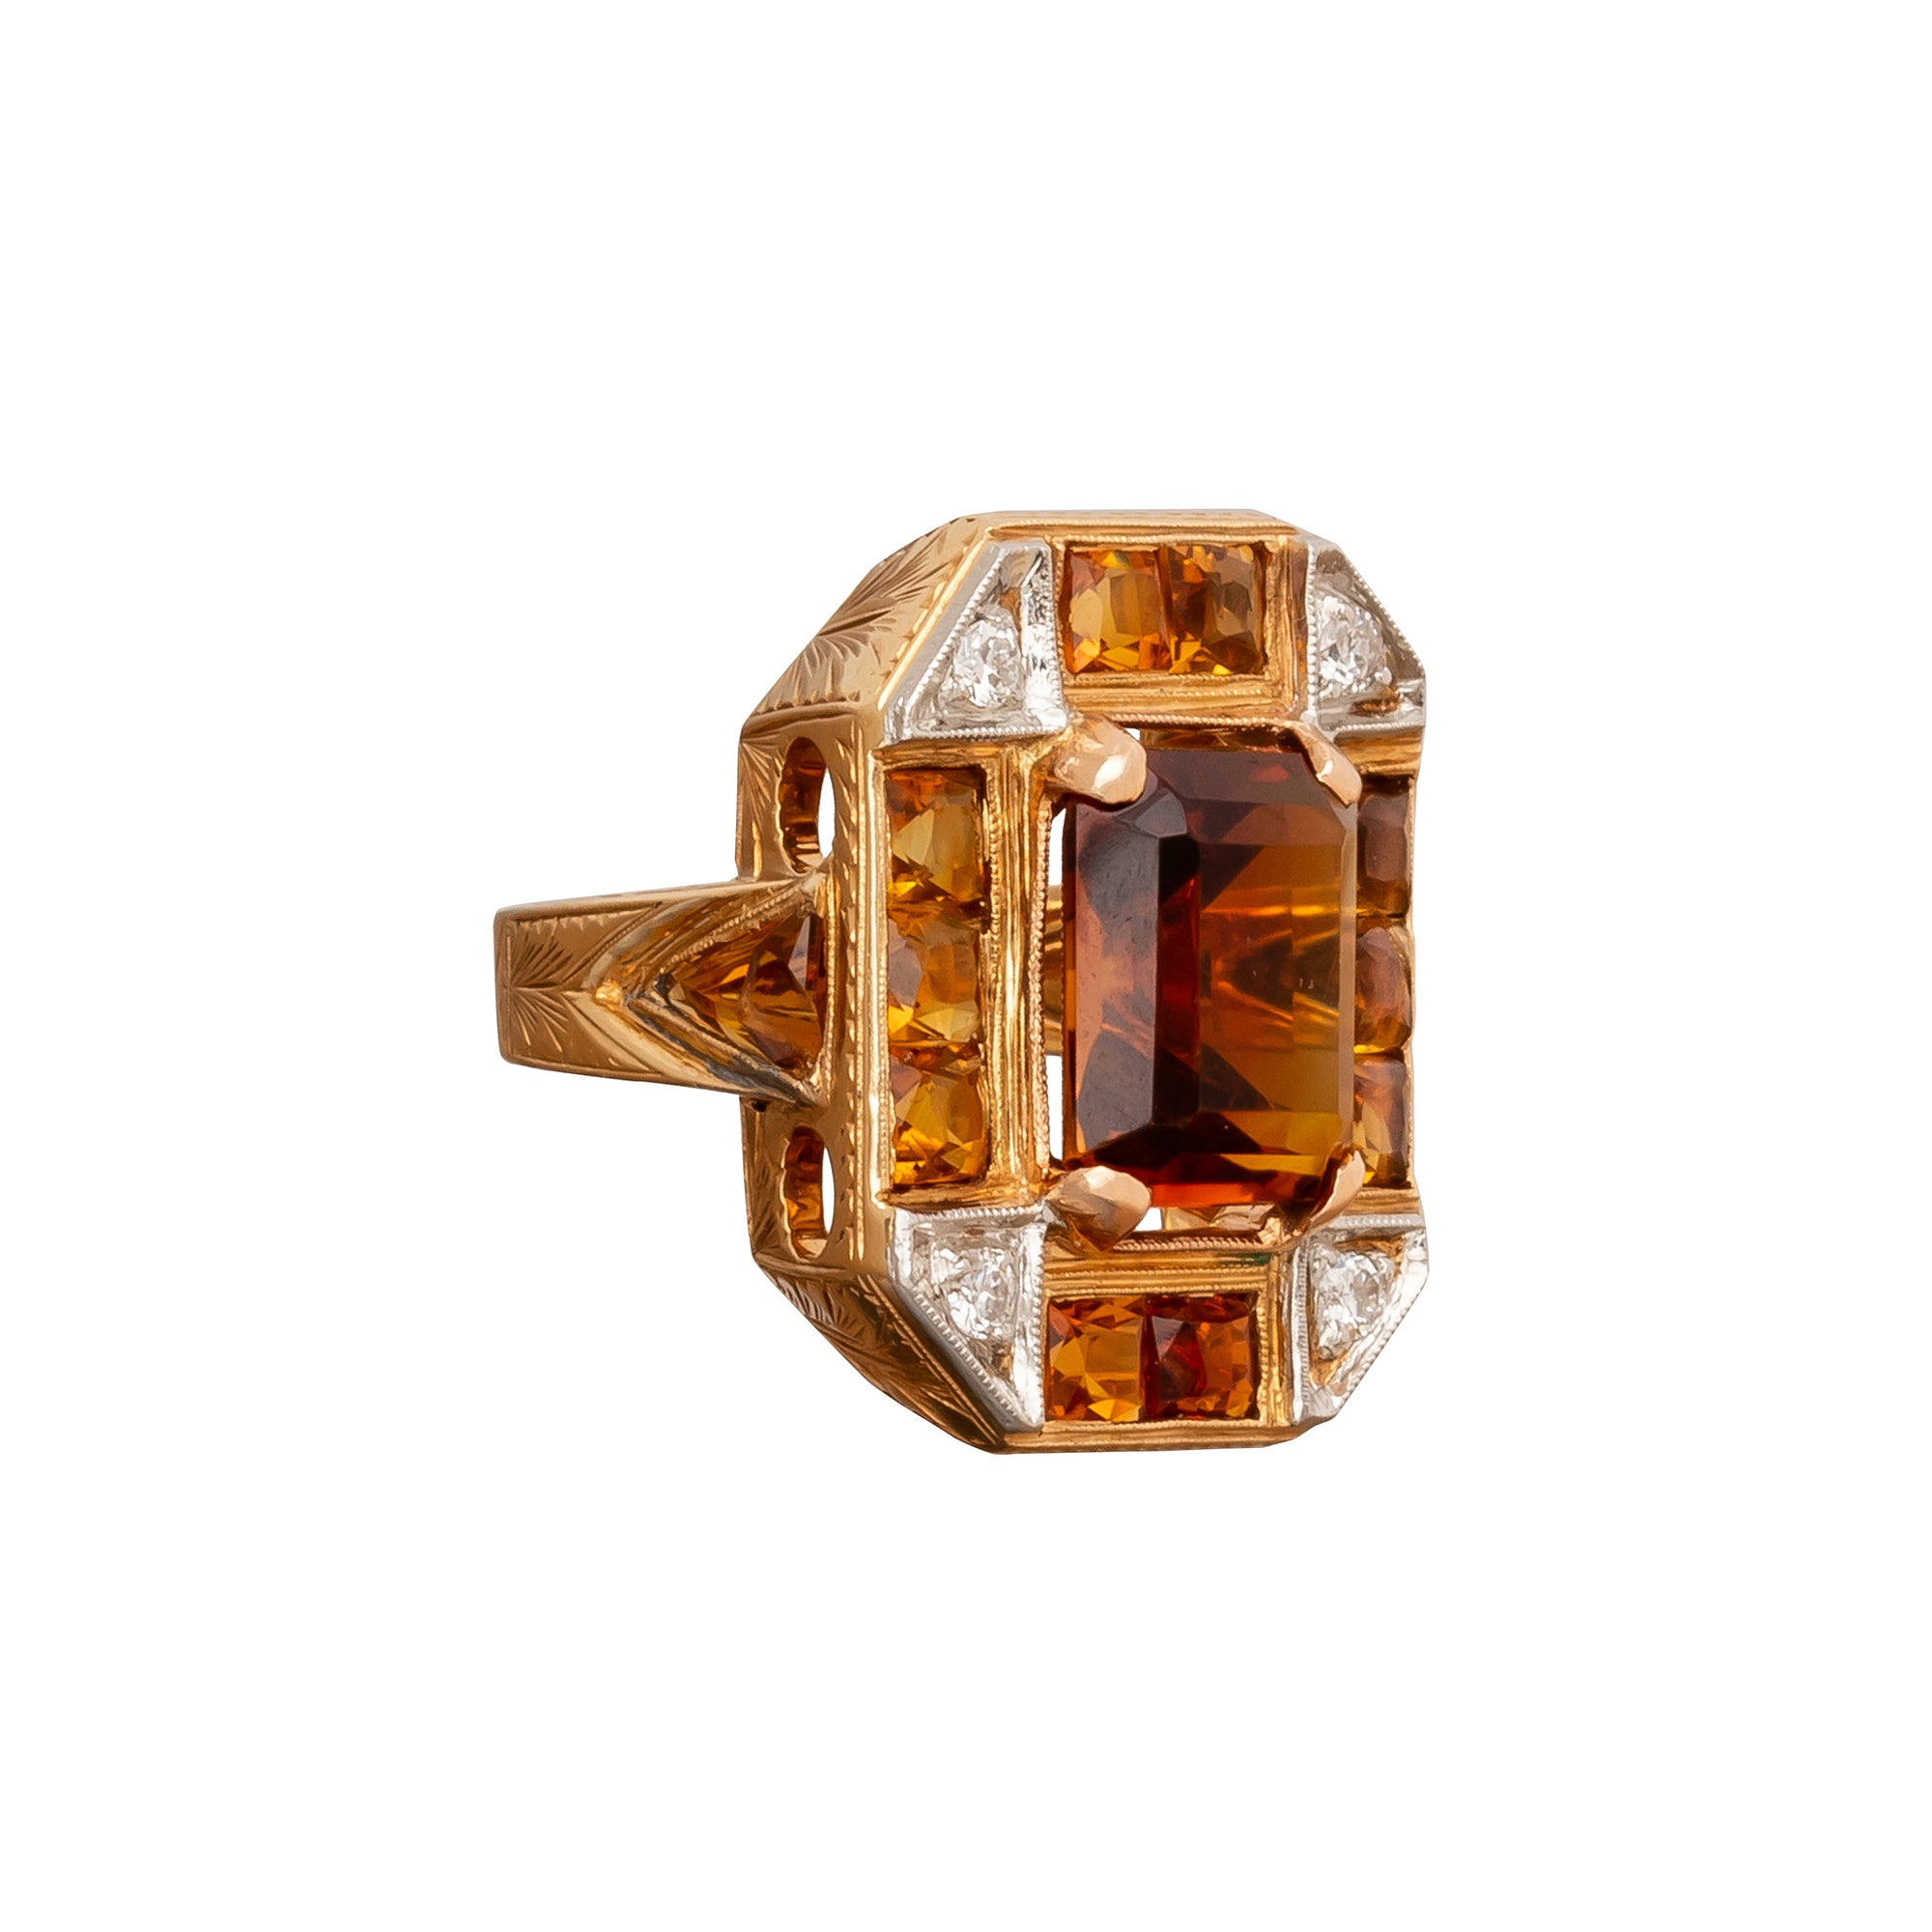 Topaz & Diamond Retro Ring - Antique & Vintage Jewelry - Rings | Broken English Jewelry